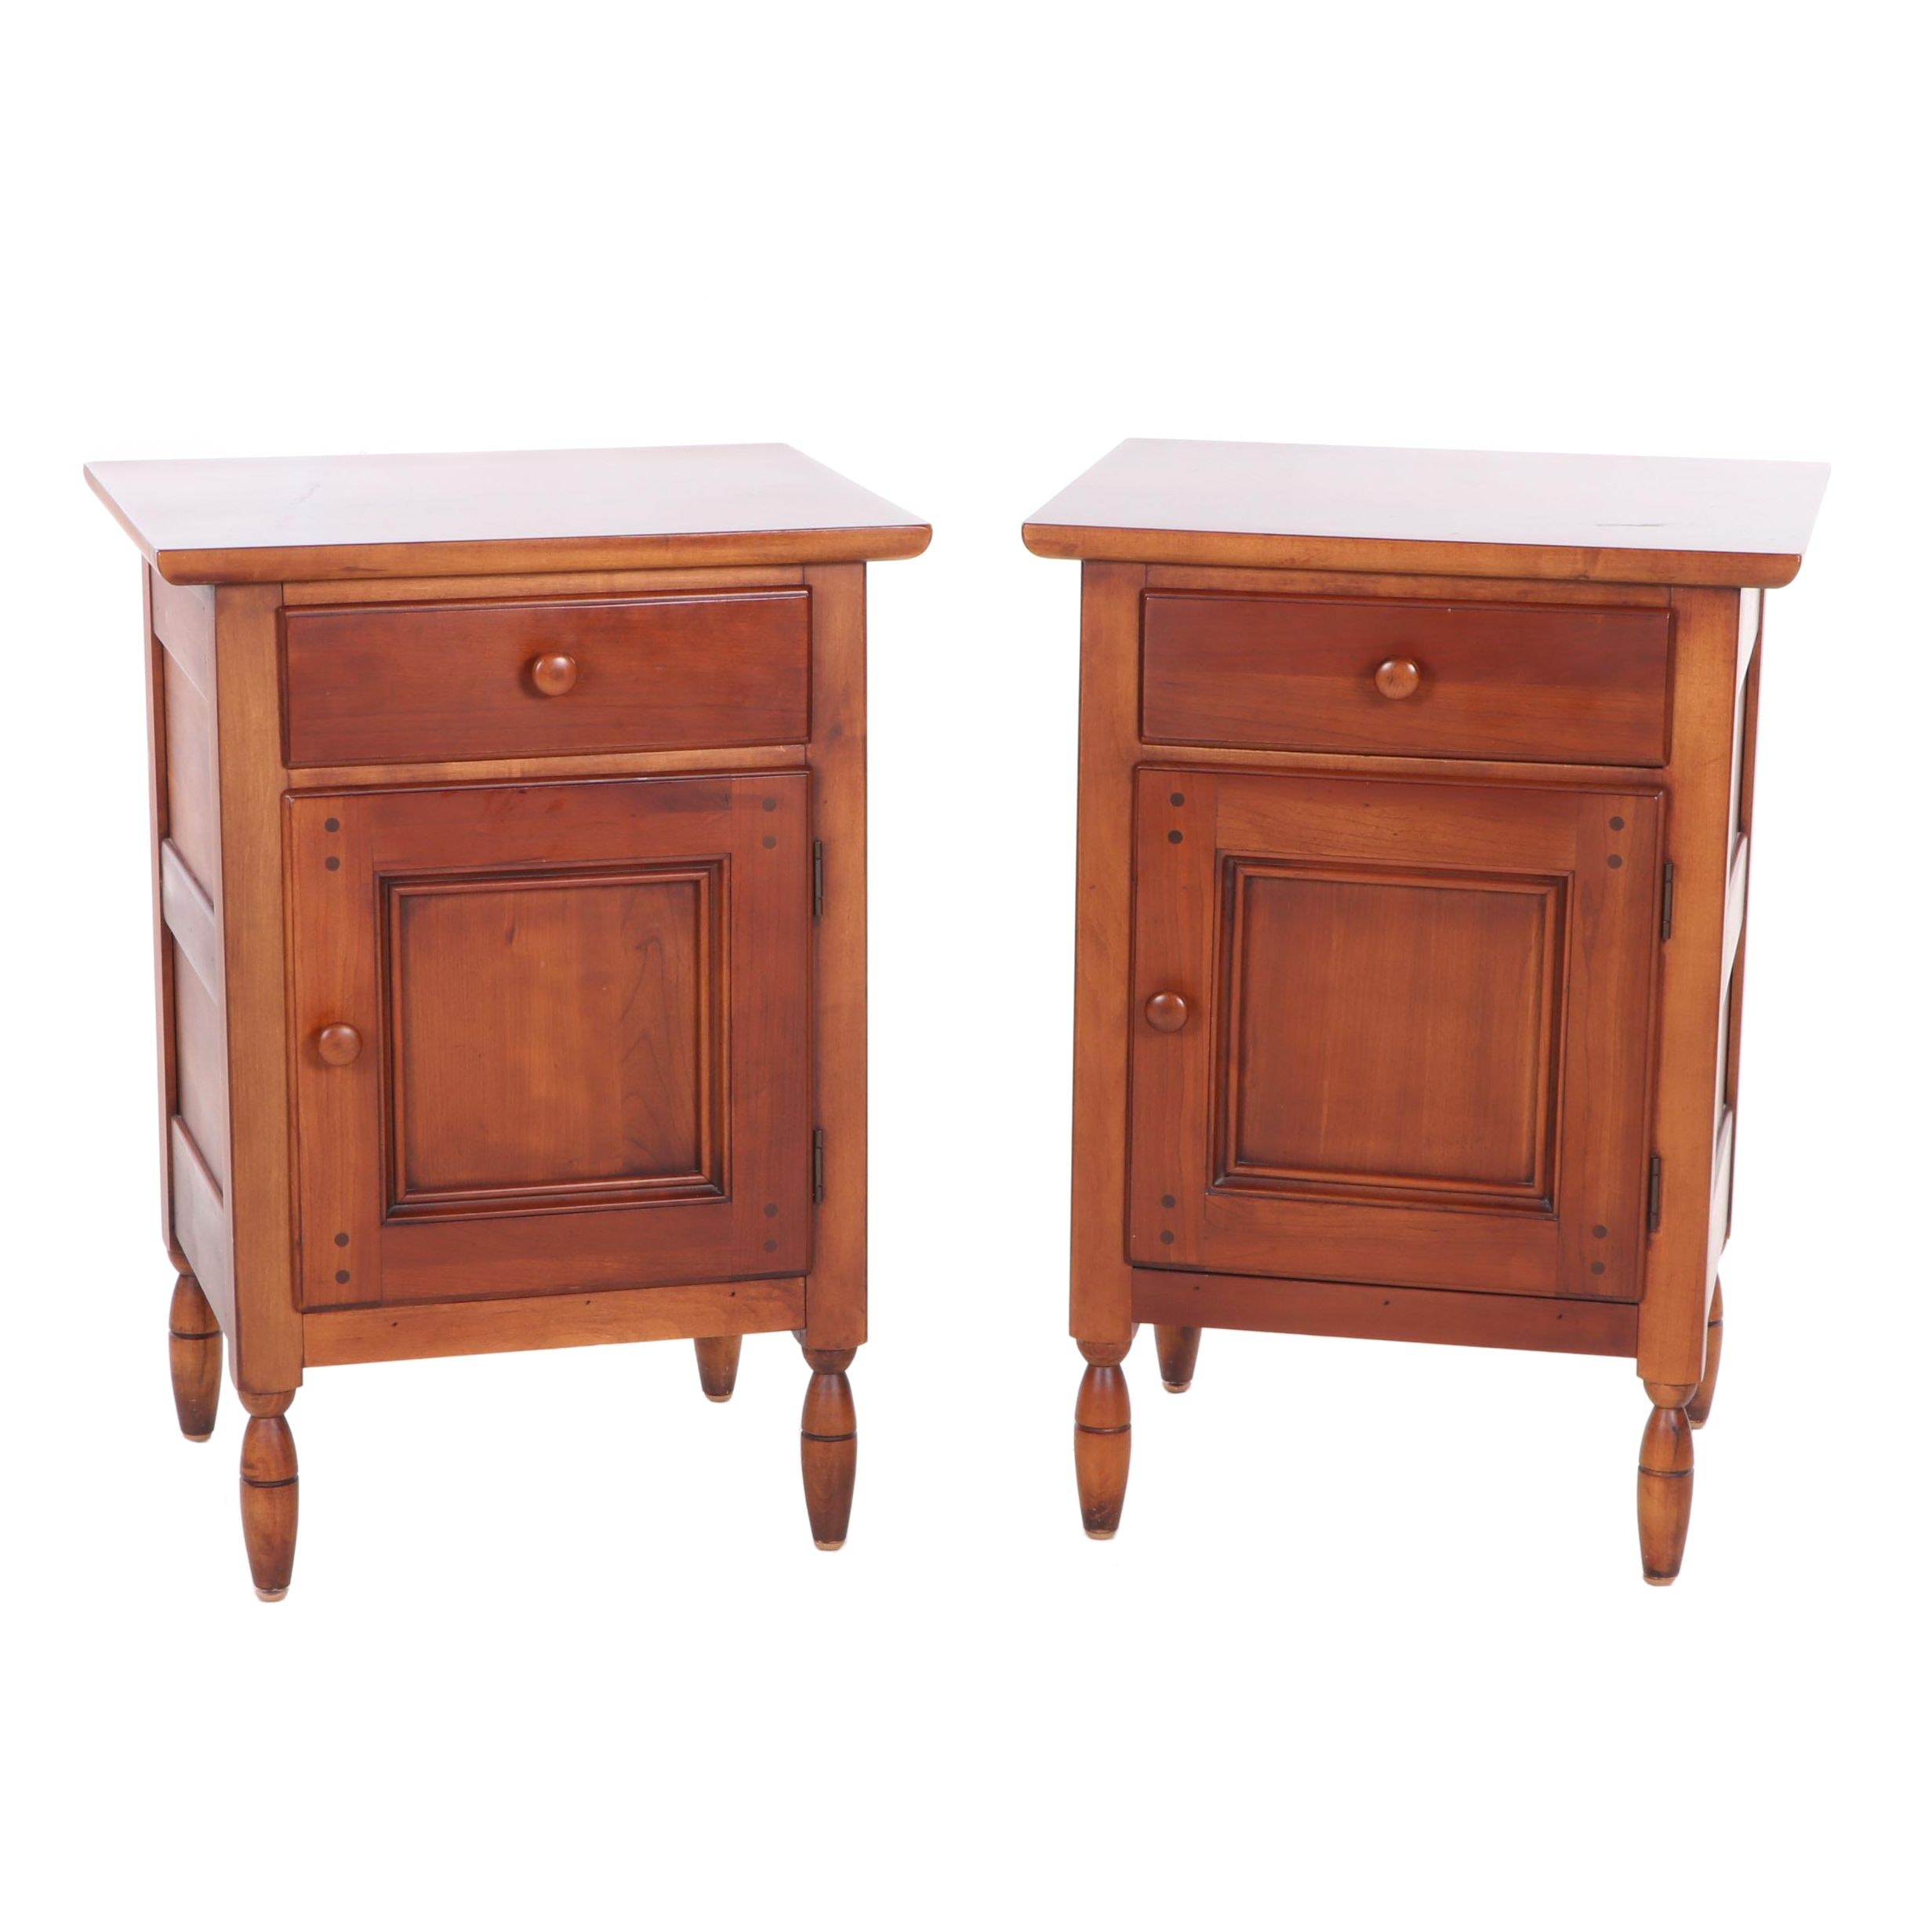 Pair of Lexington Furniture Cherry Bedside Tables